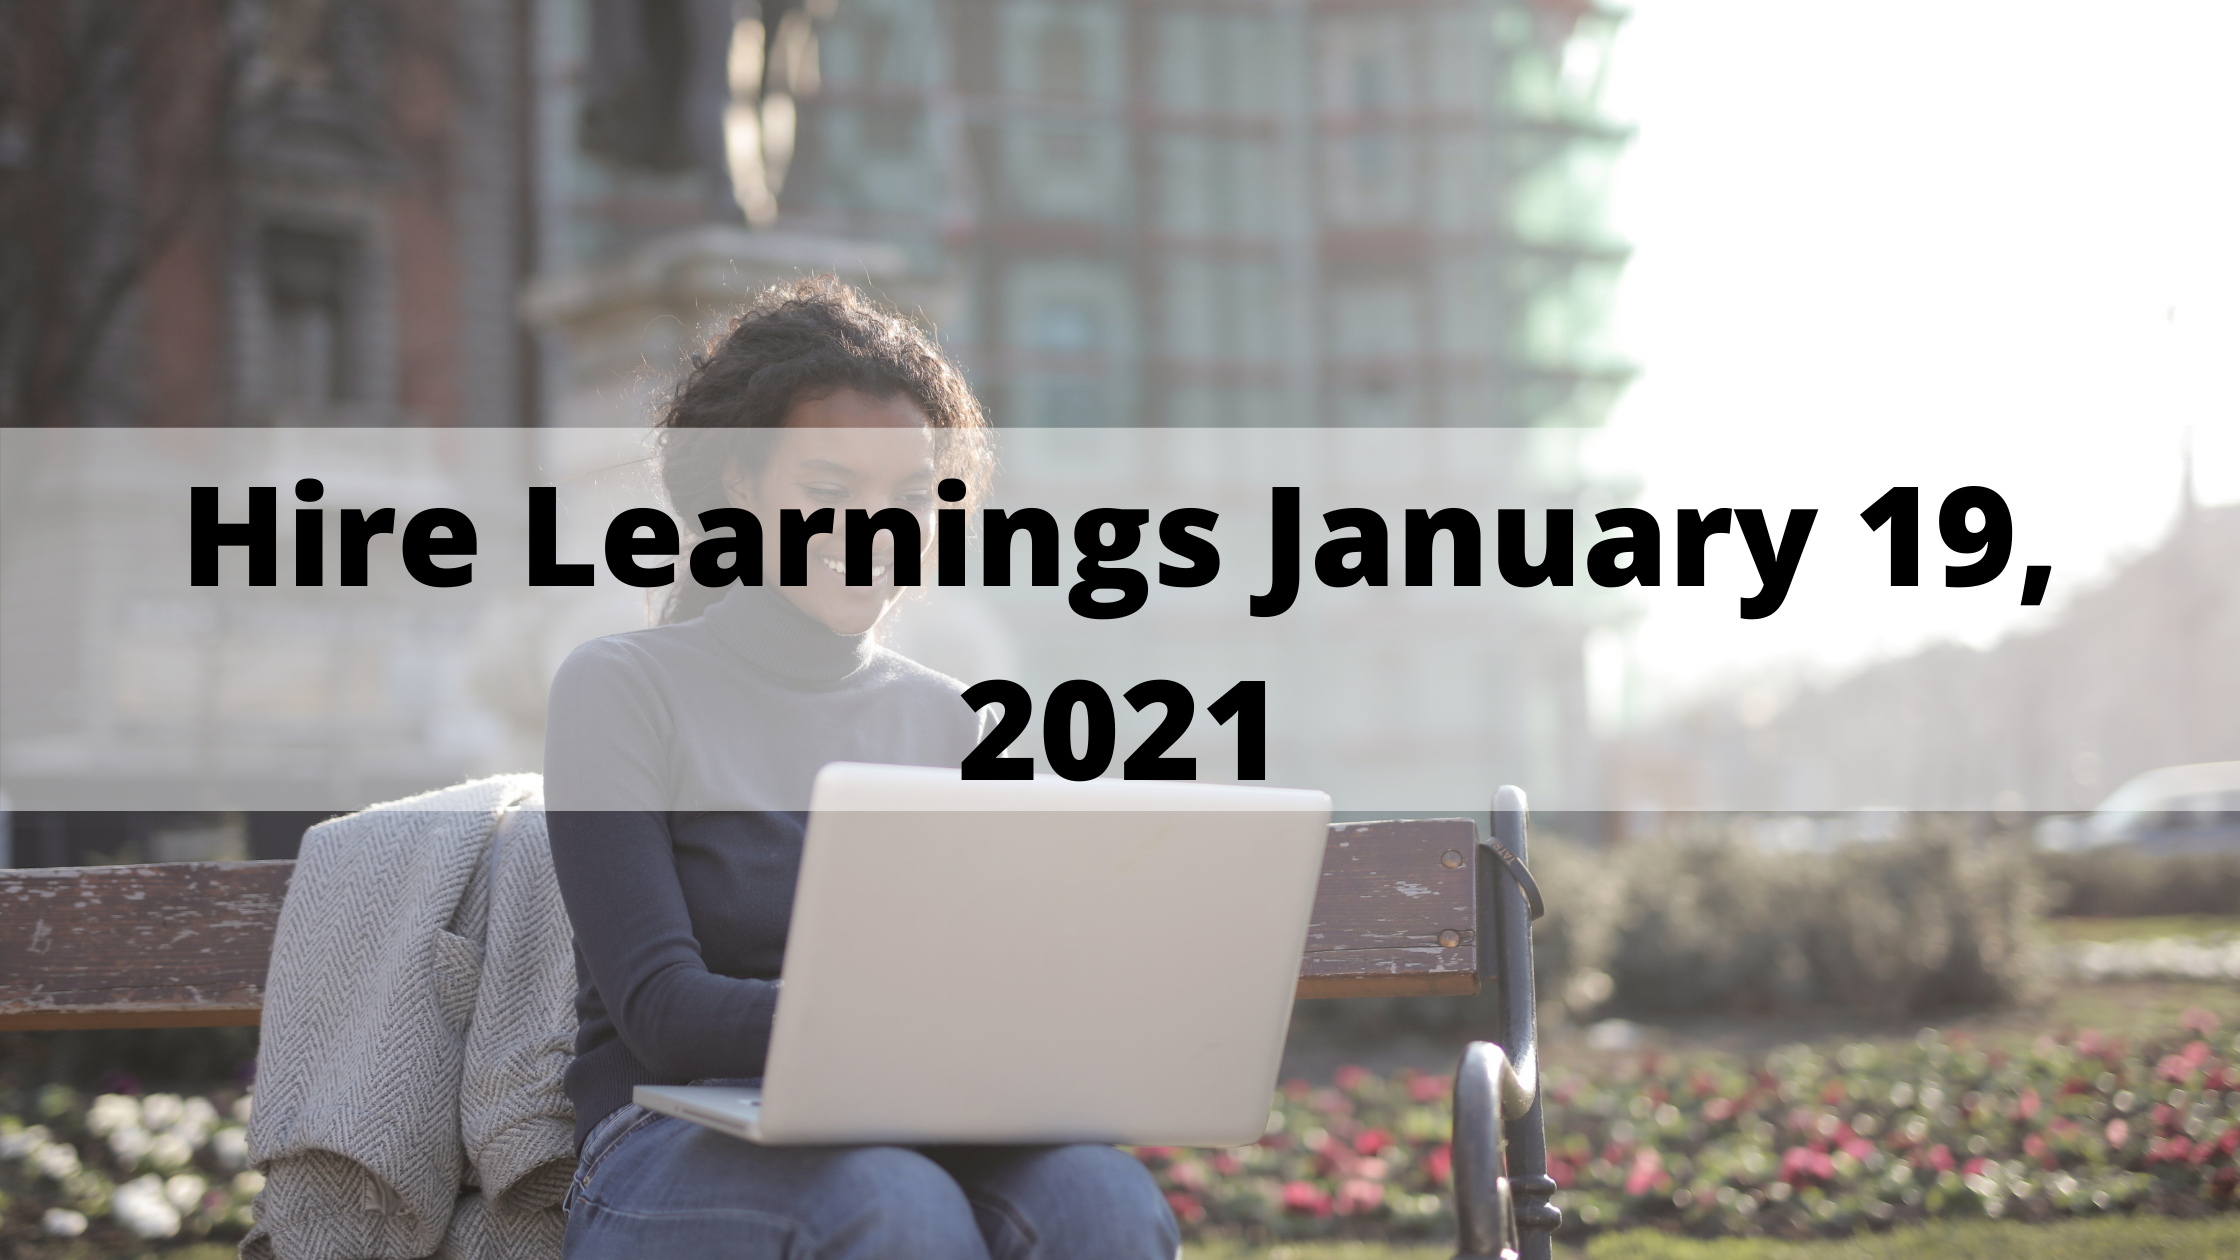 hire-learnings-january-19-2021